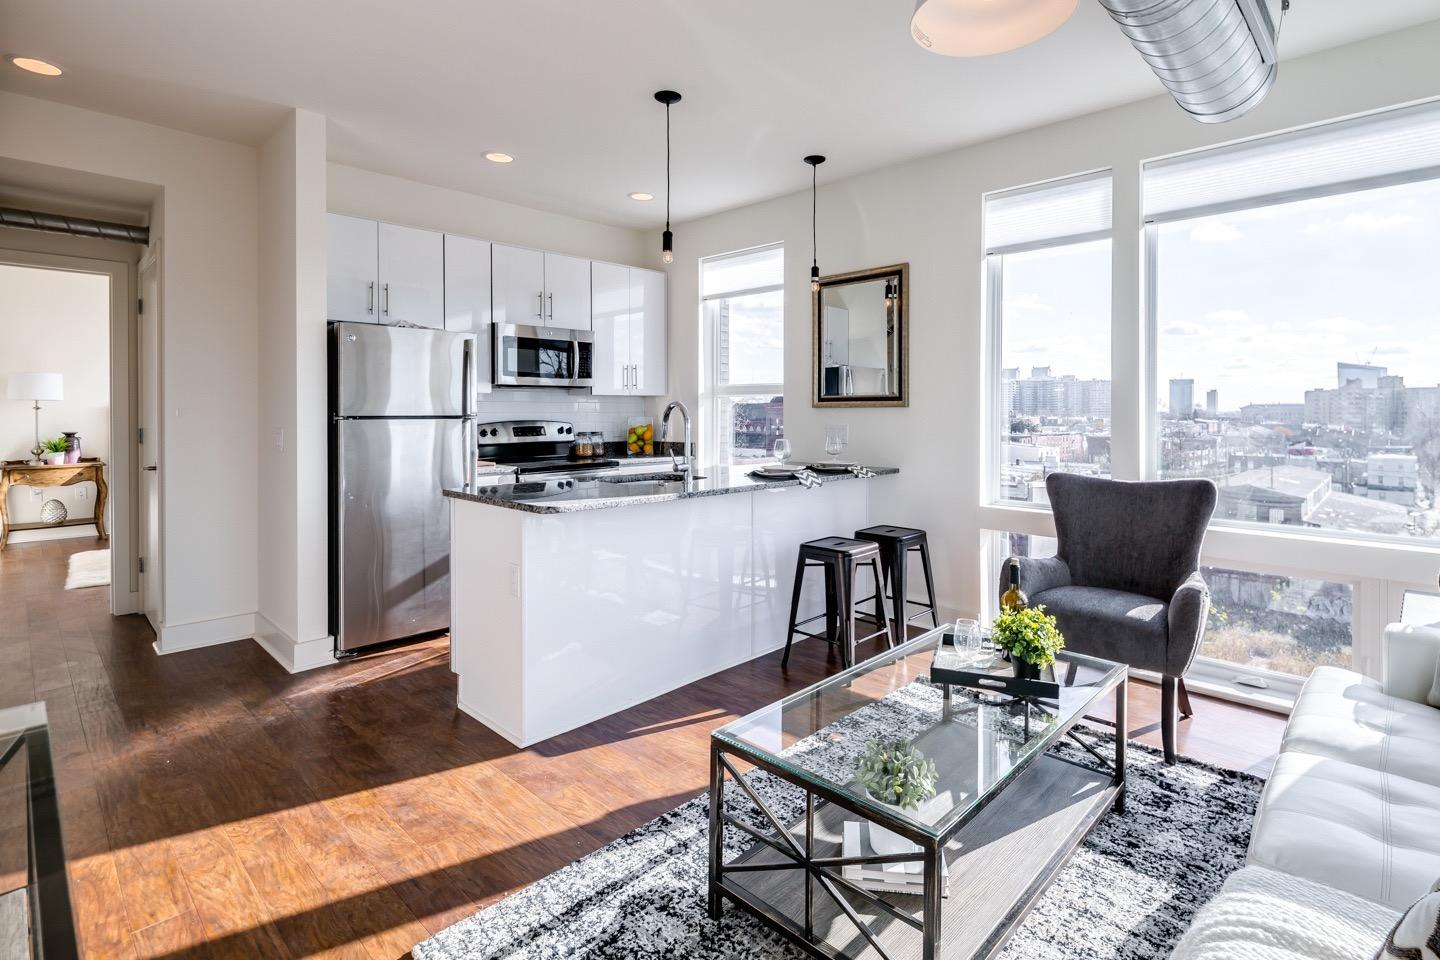 found rental apartments under 1500 in pricey american cities